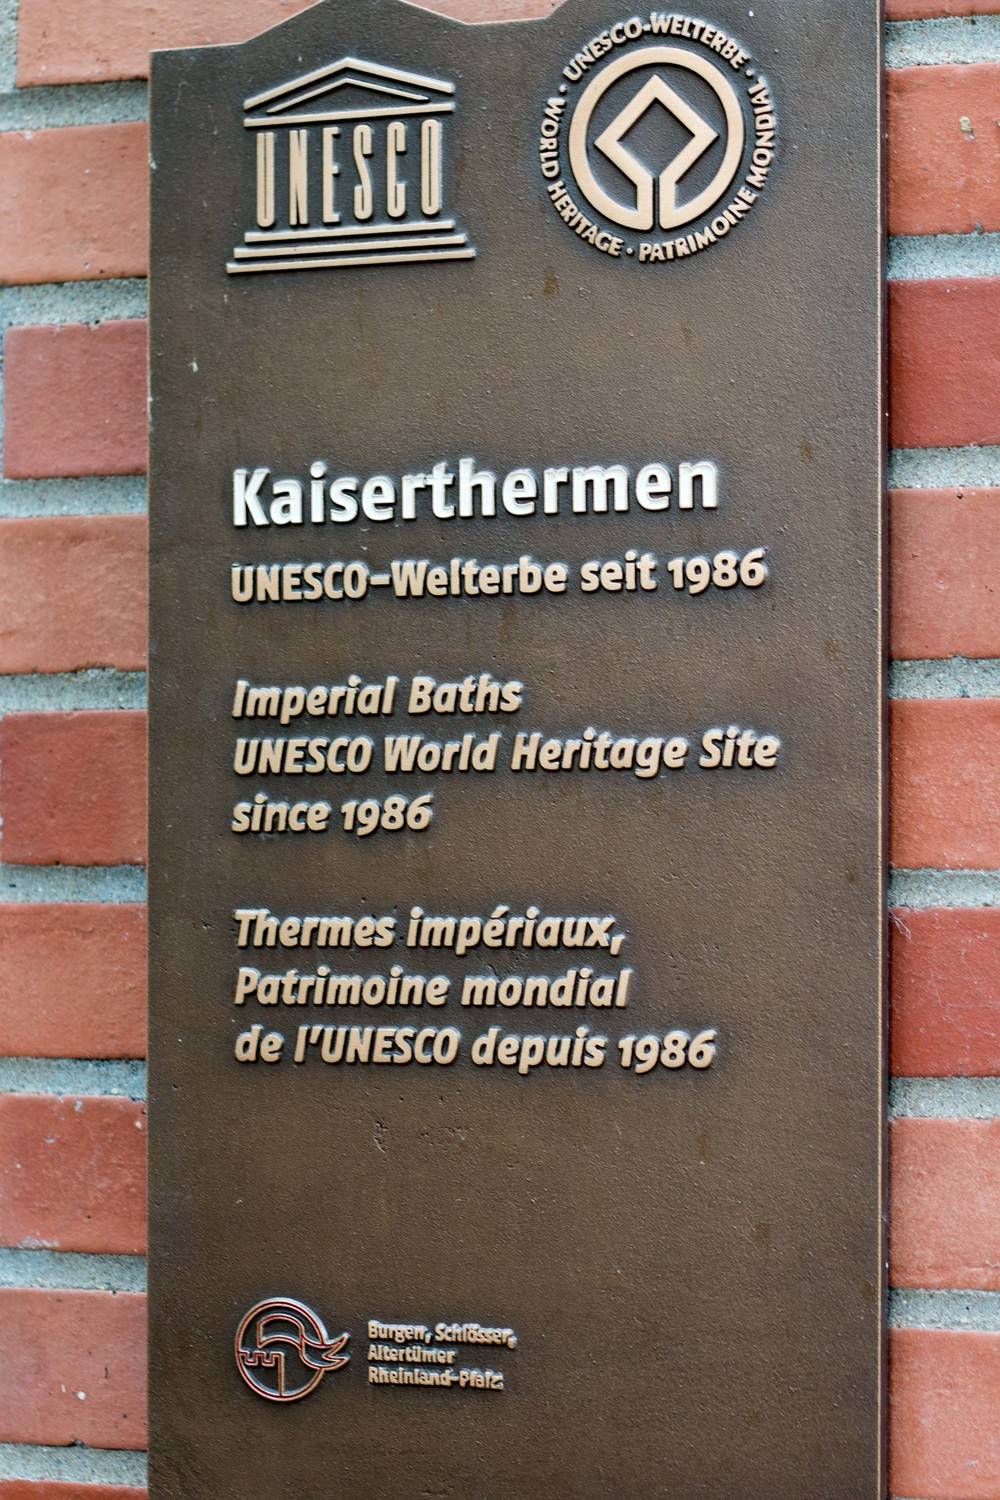 Kaiserthermen Roman Bath Ruins are a UNESCO World Heritage Site